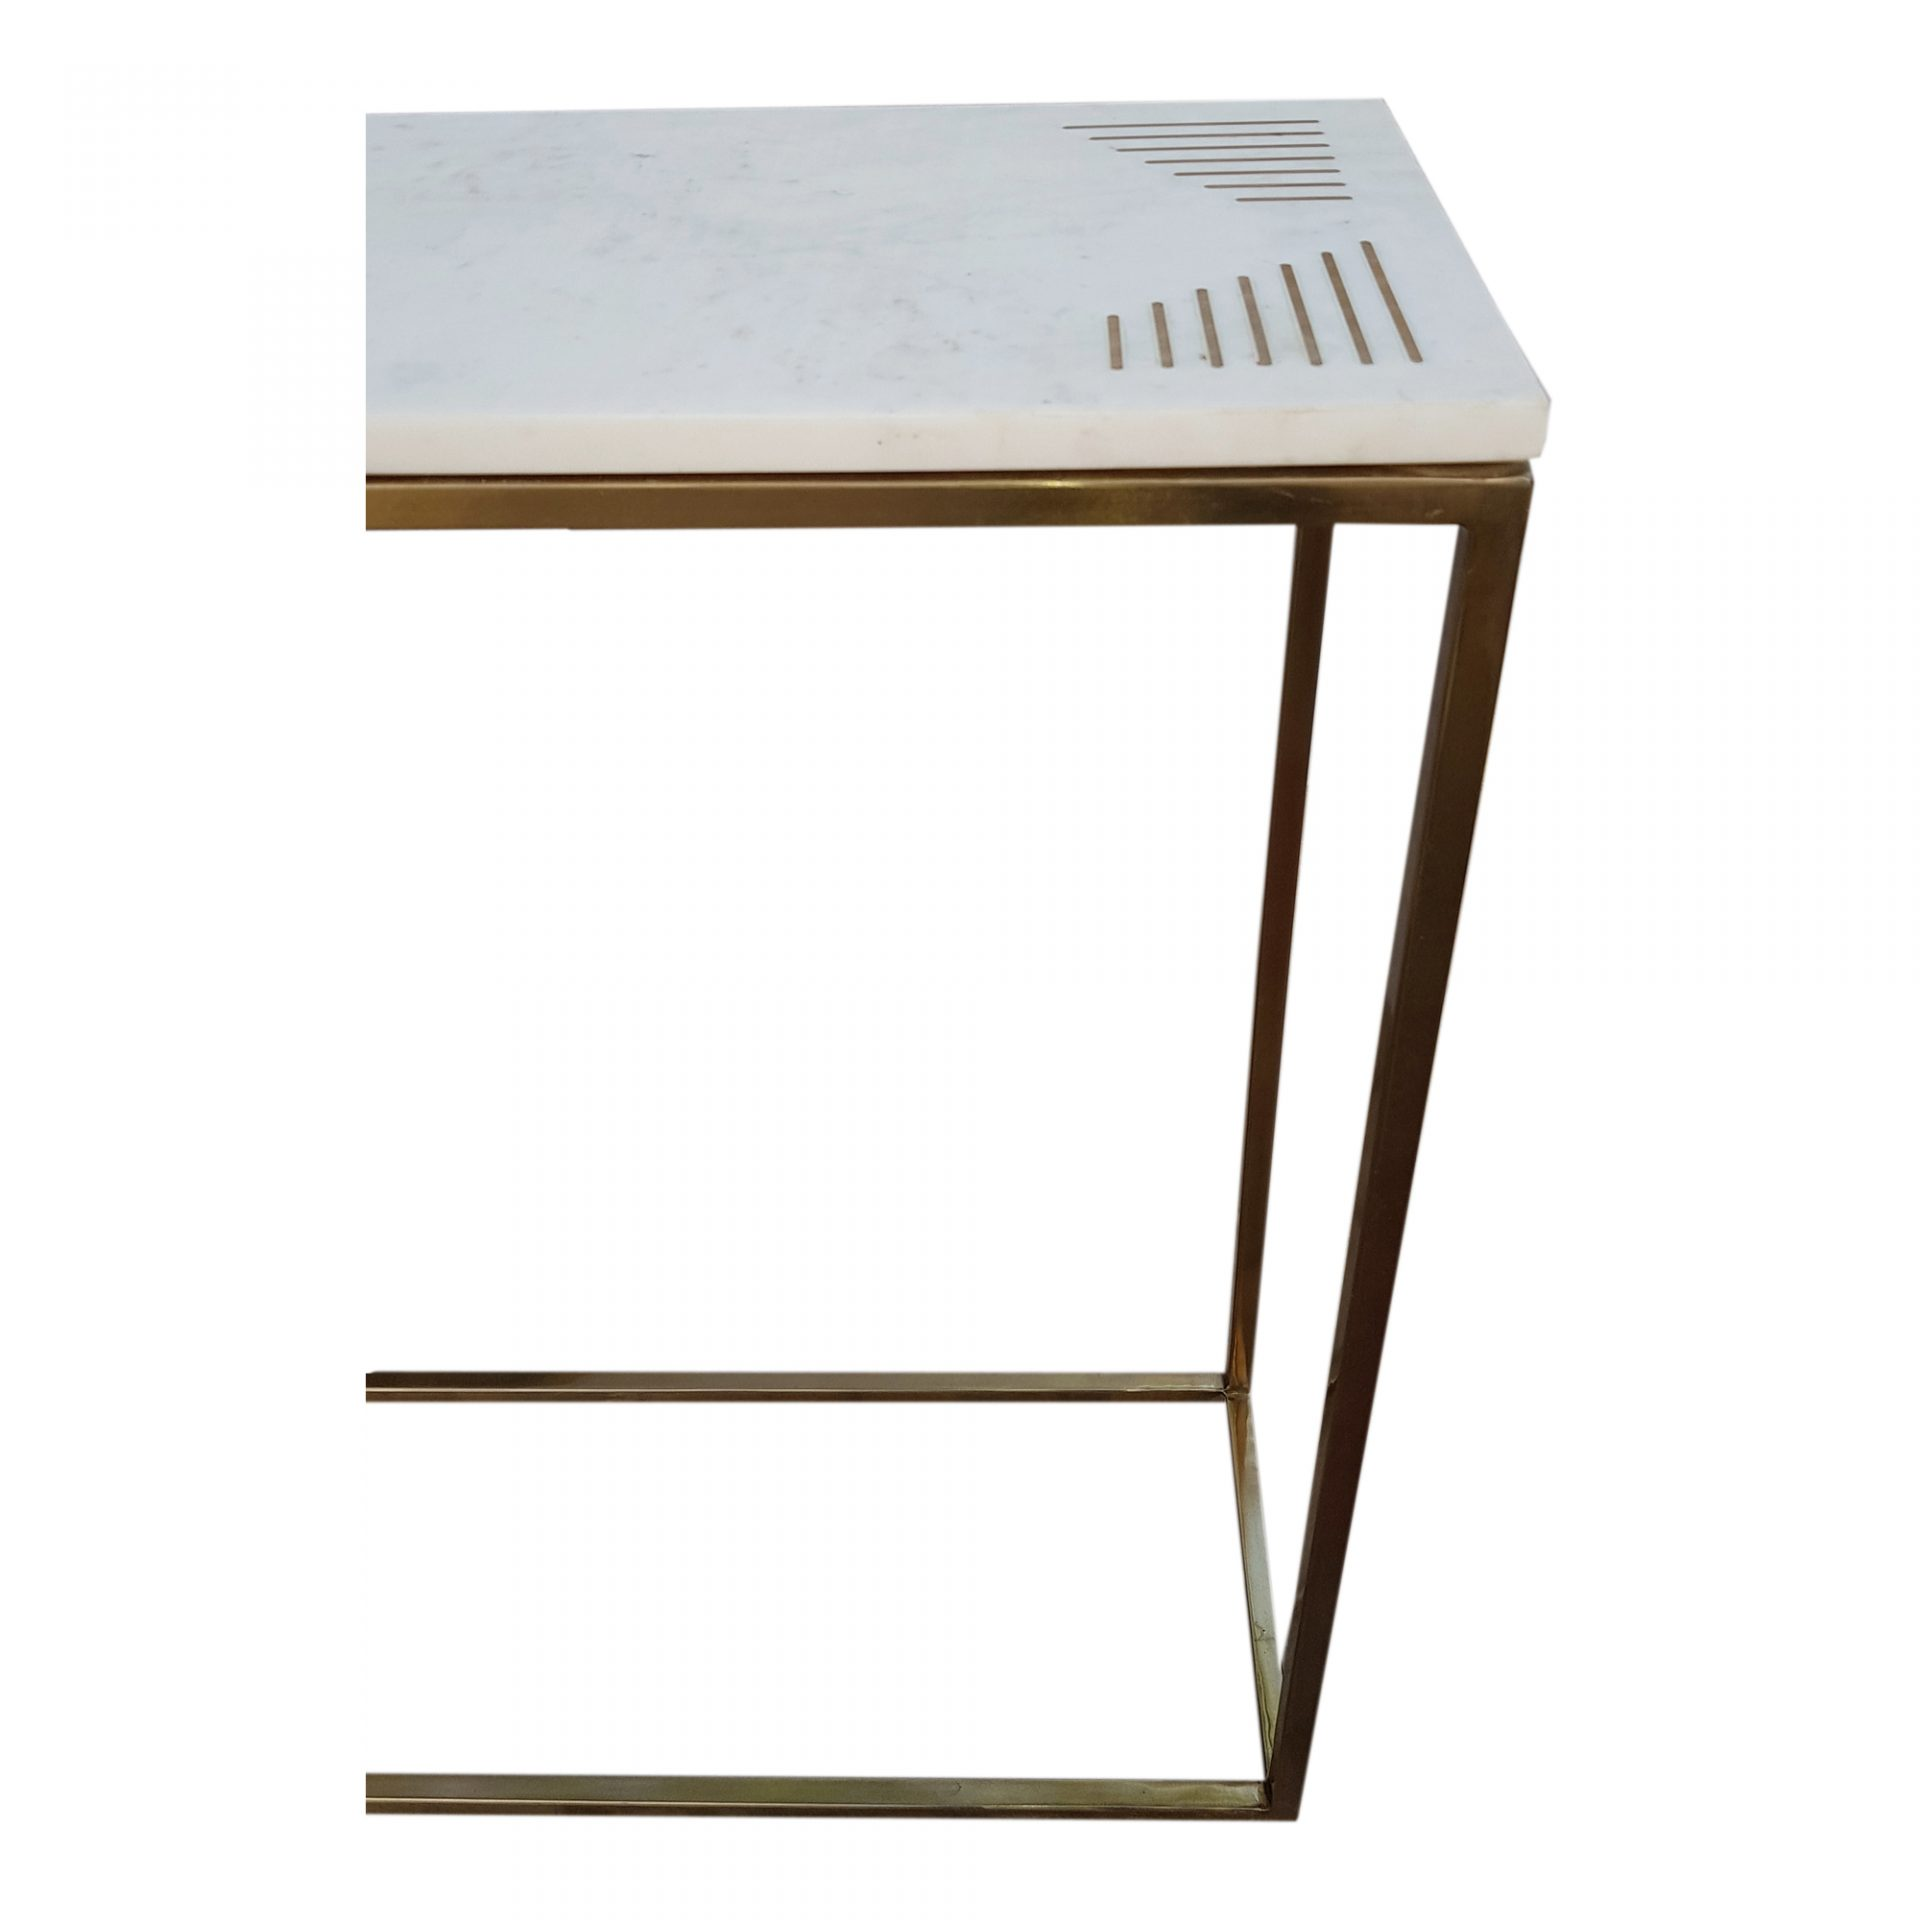 quarry console table products moe accent tables whole high legs copper home decor and accessories college dorm large cabinet placemats metal lamp small pub chairs garden white